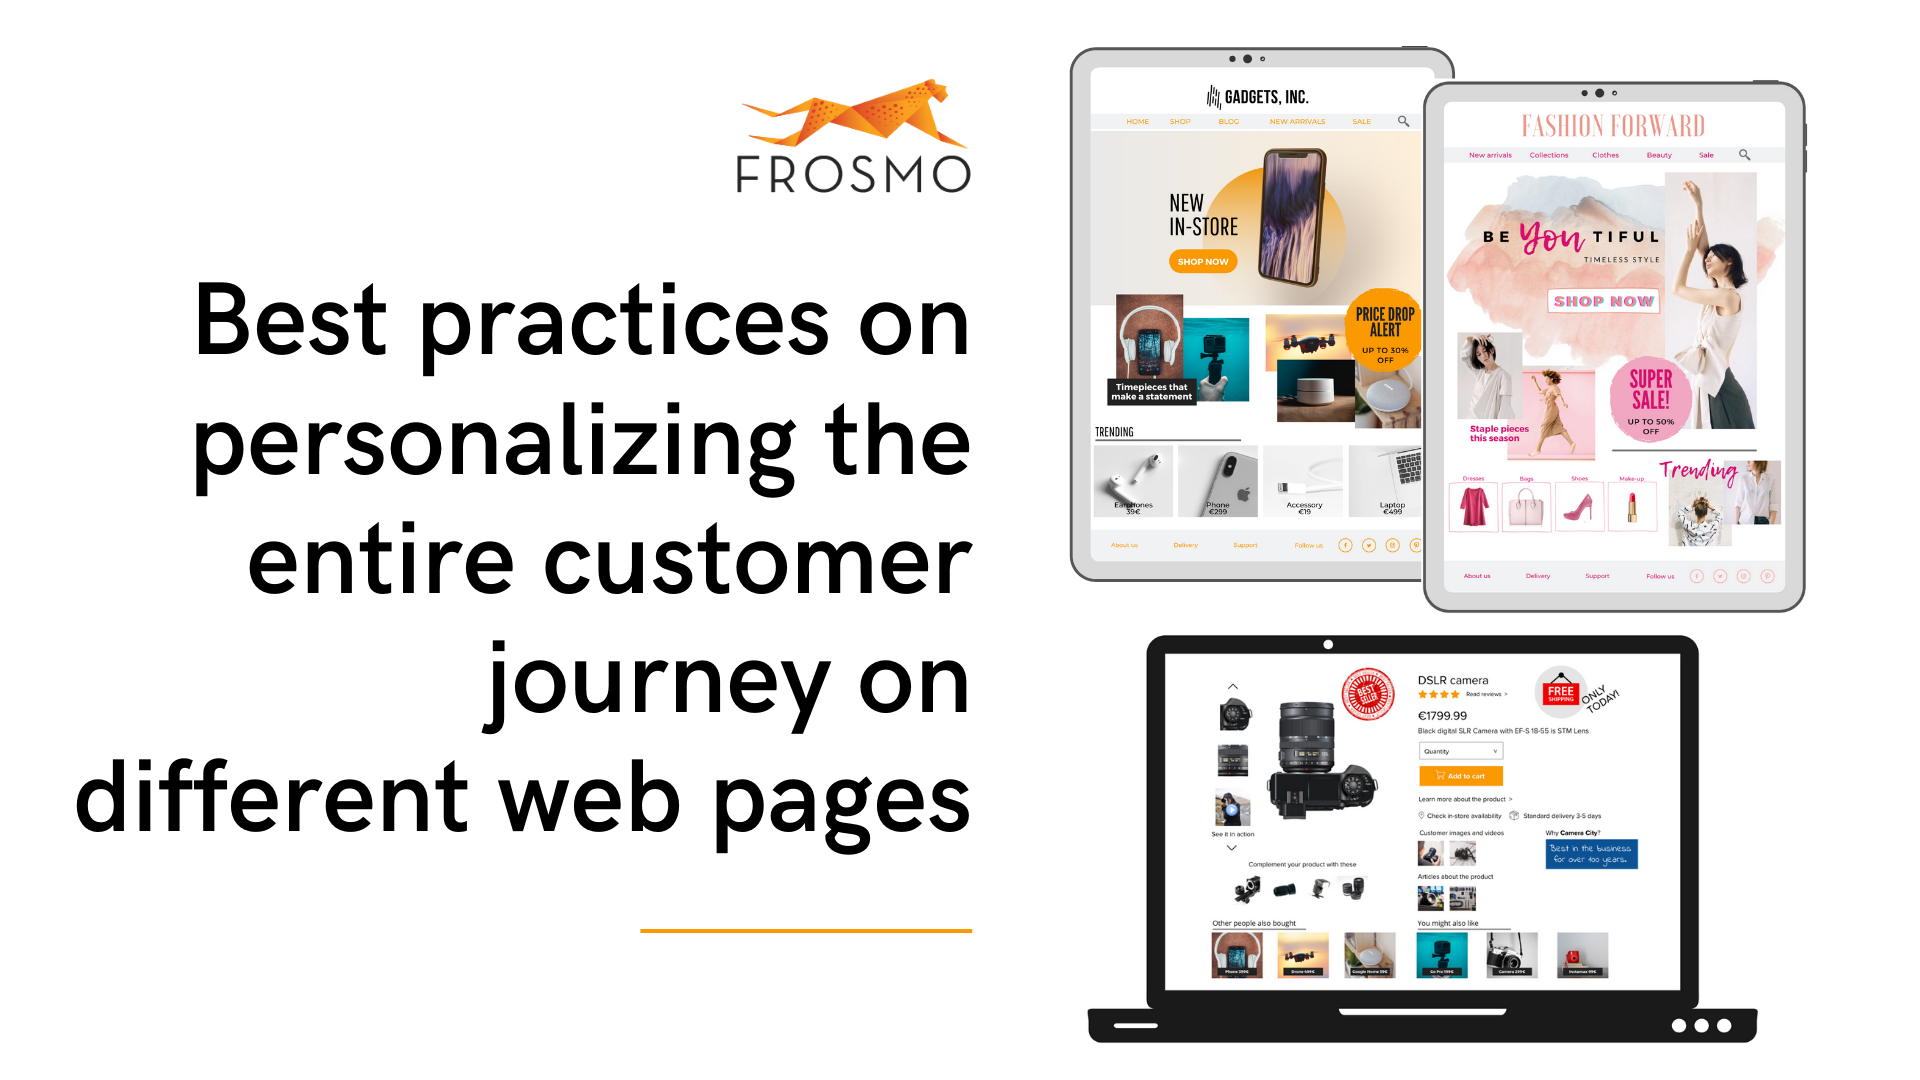 Best practices on personalizing the entire customer journey on different web pages